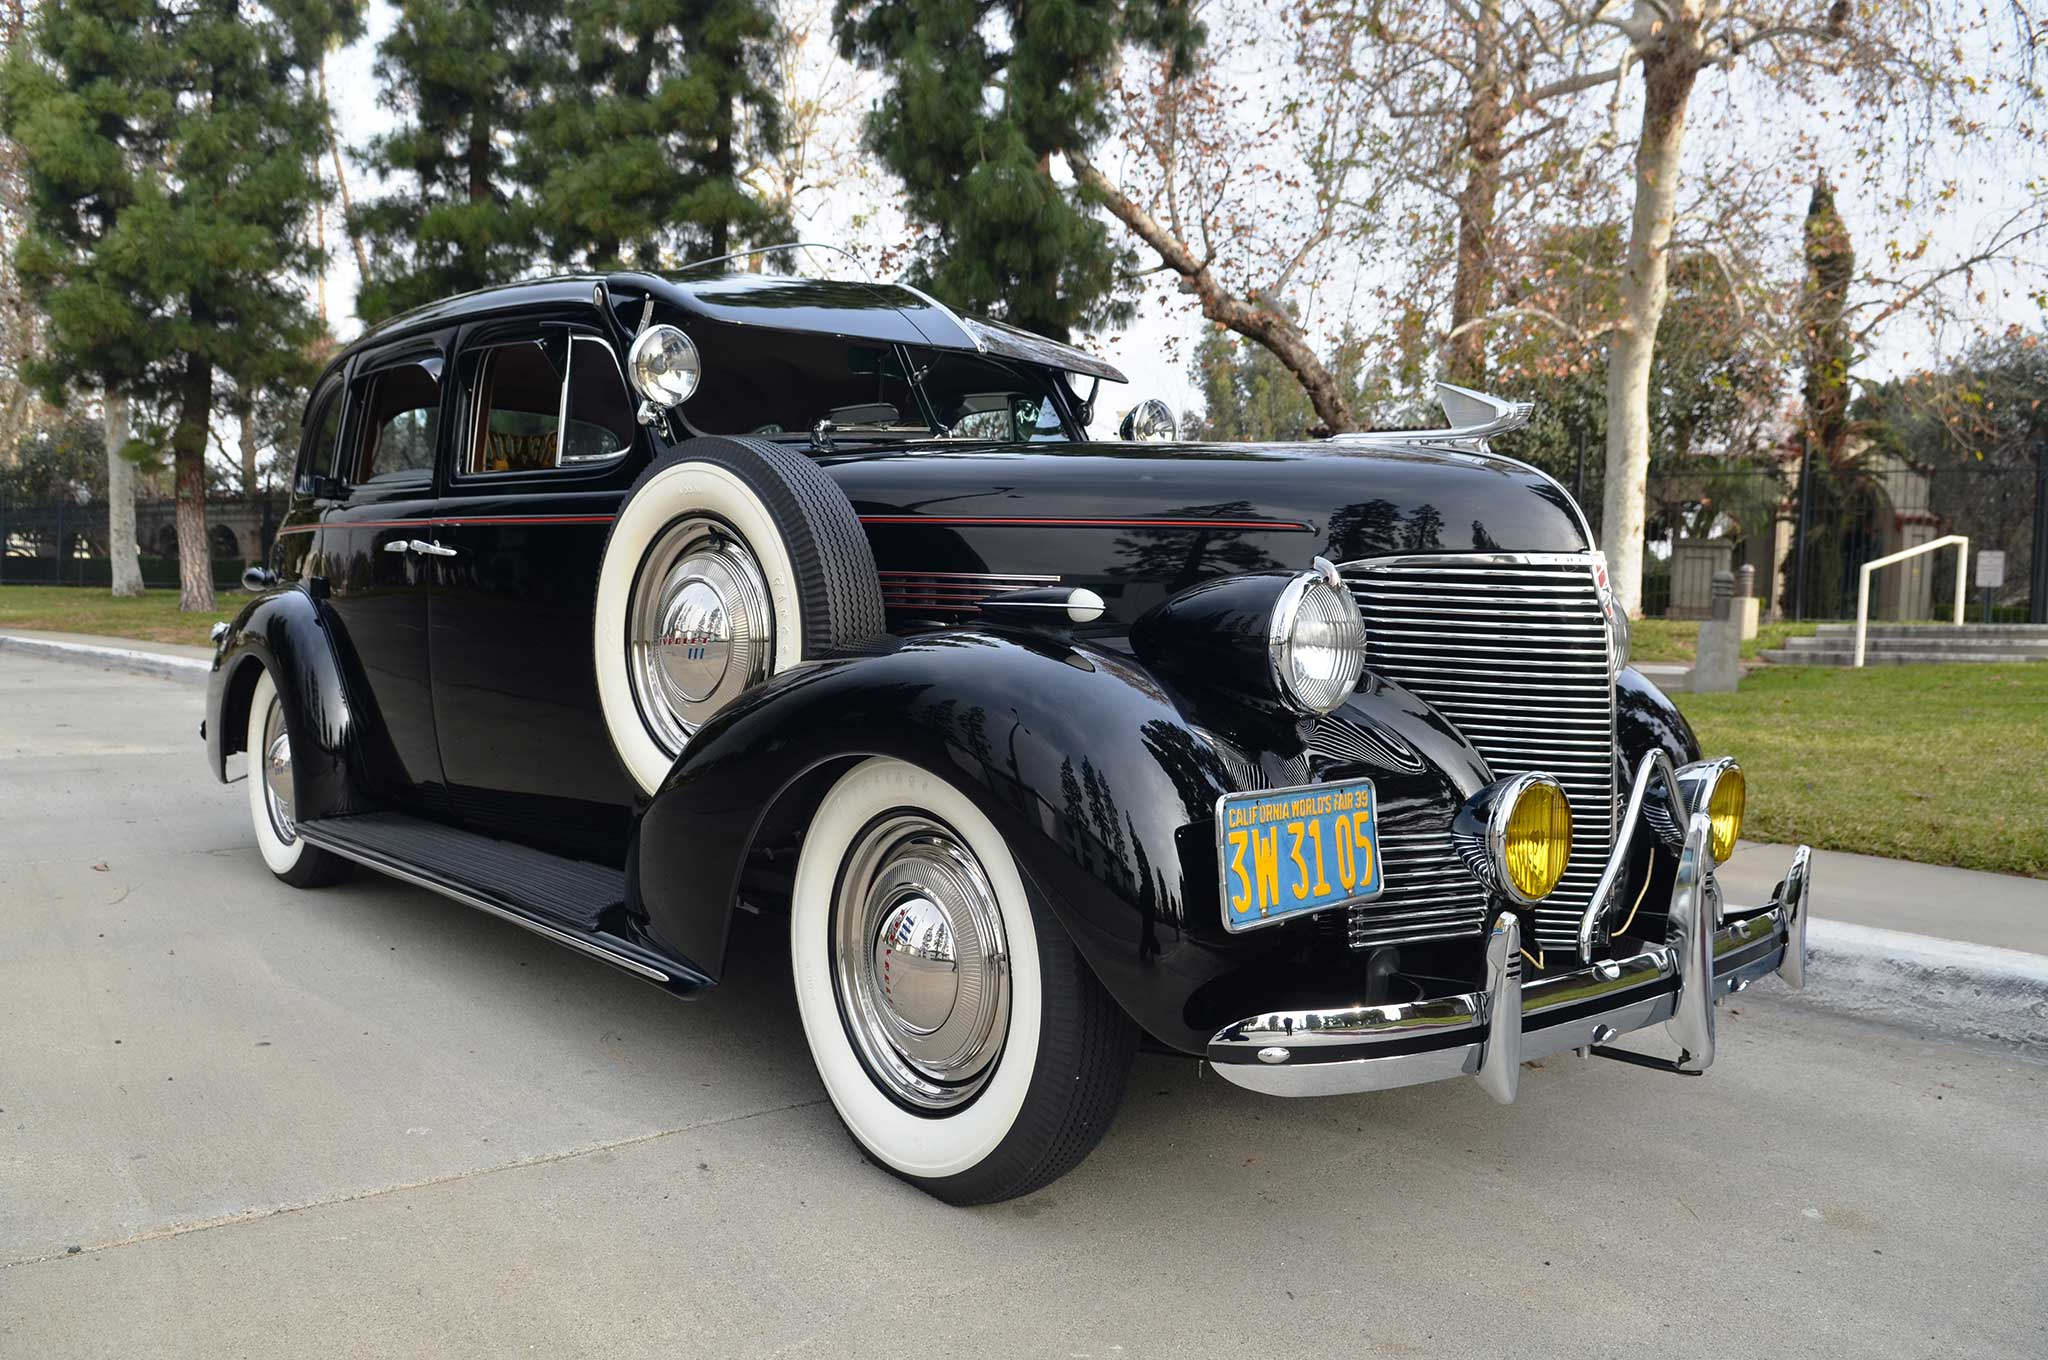 anthony solis' bomb: a 1939 chevy master deluxe